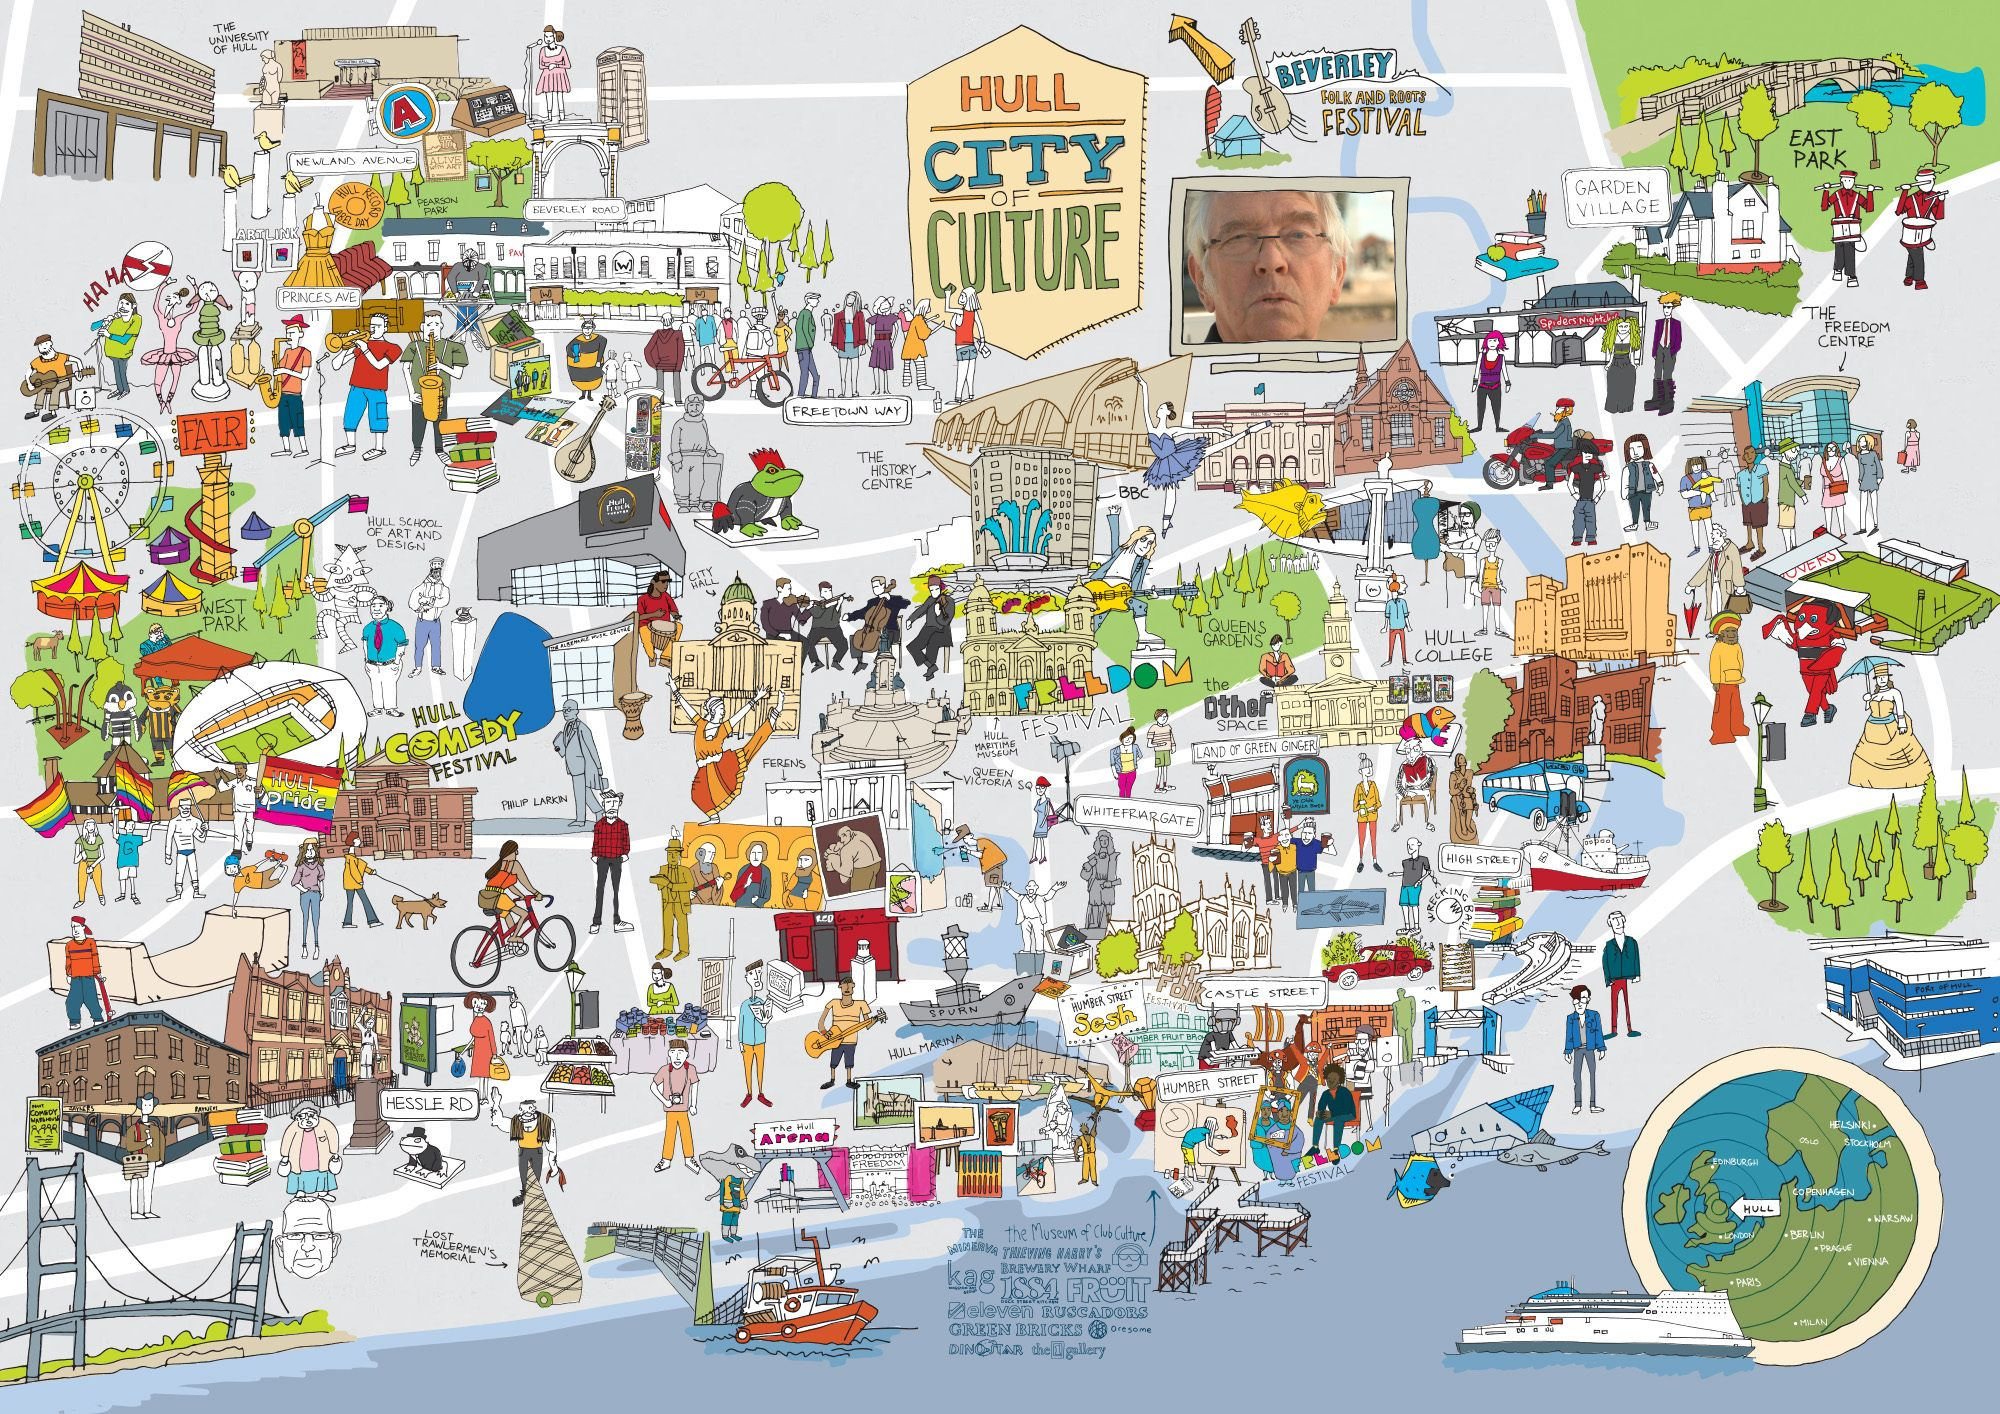 Vhey city of culture interactive map east yorkshire pinterest vhey city of culture interactive map gumiabroncs Choice Image